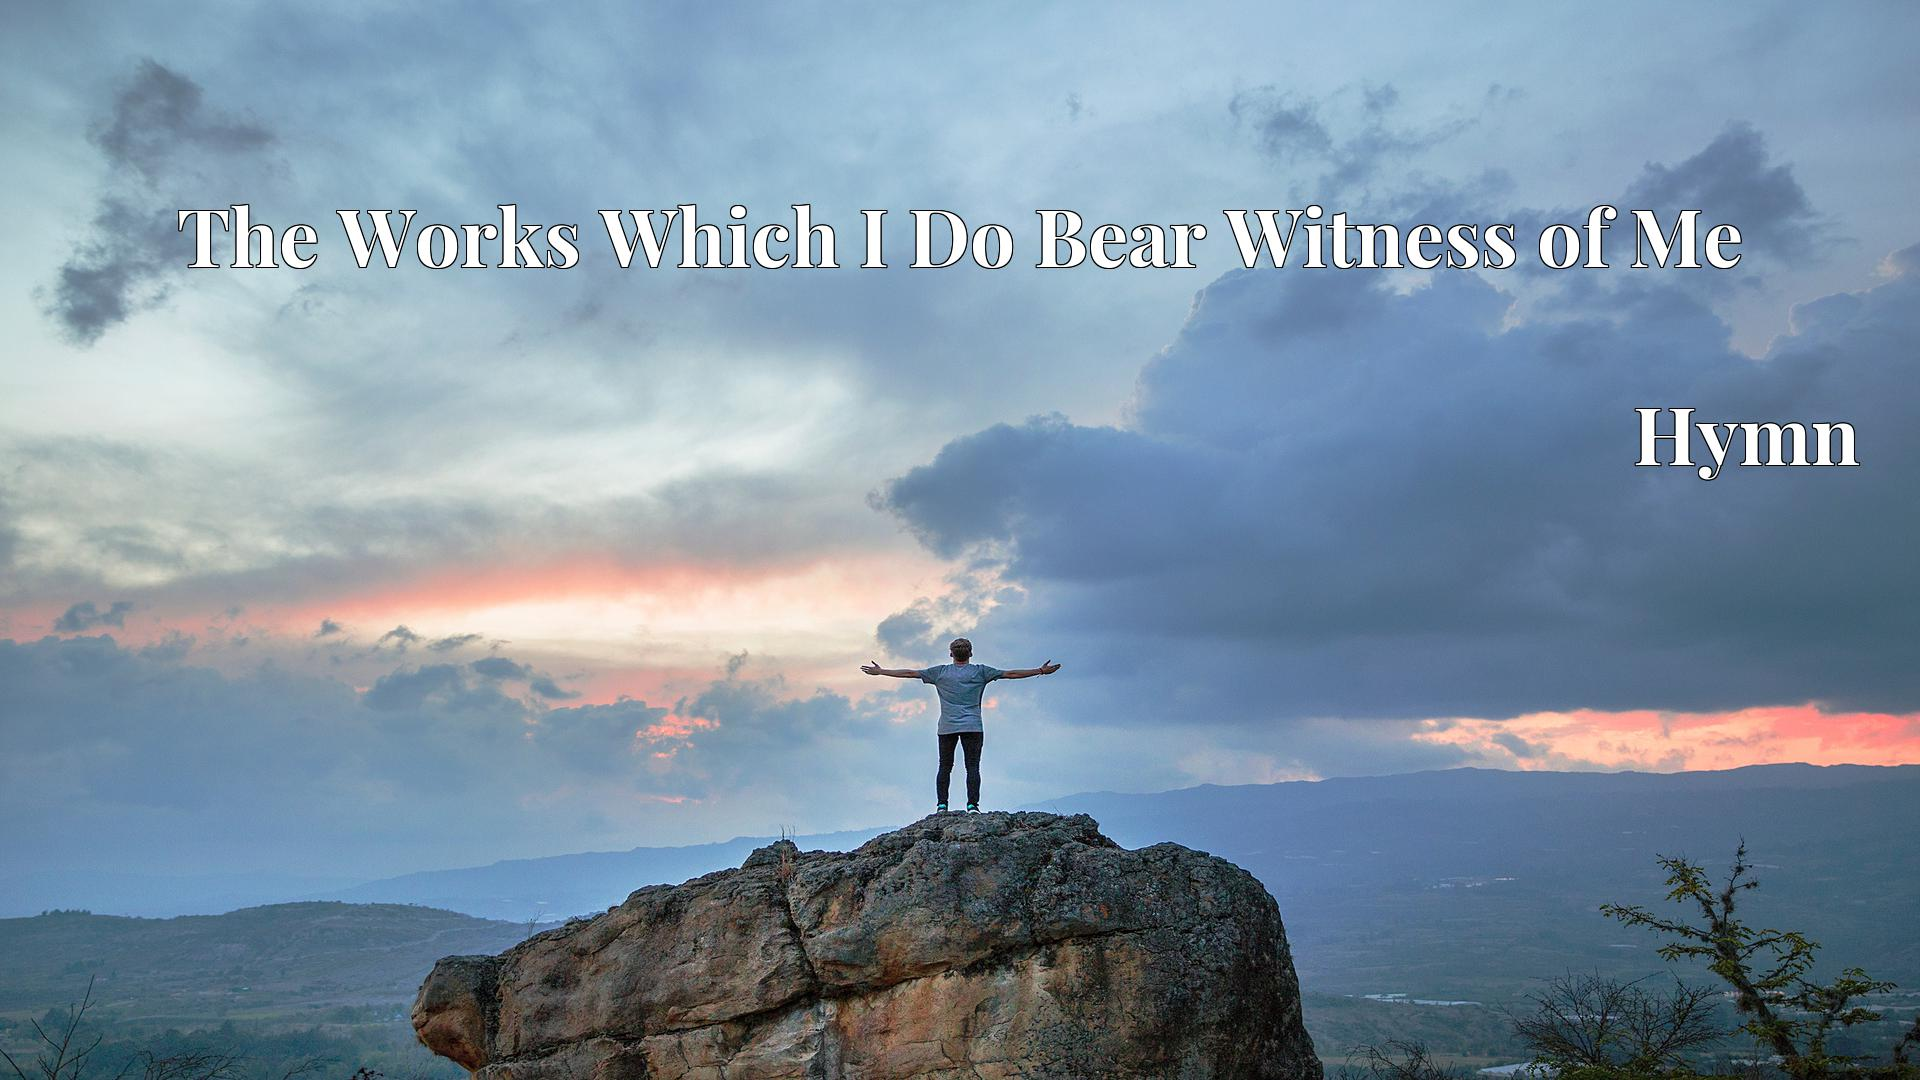 The Works Which I Do Bear Witness of Me Hymn